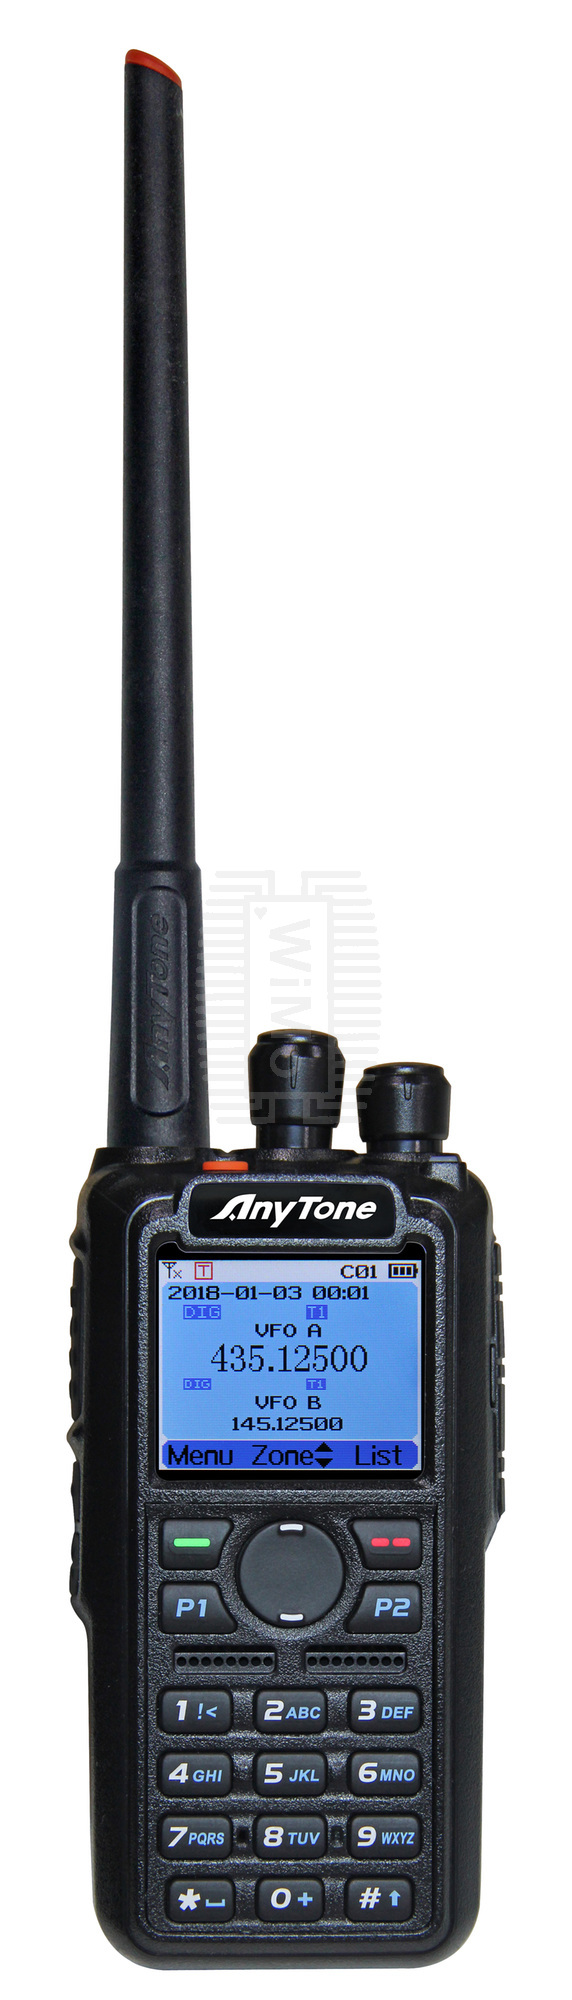 Anytone AT-D878UV Dual Band DMR HT with APRS - Nerfd net - RF News